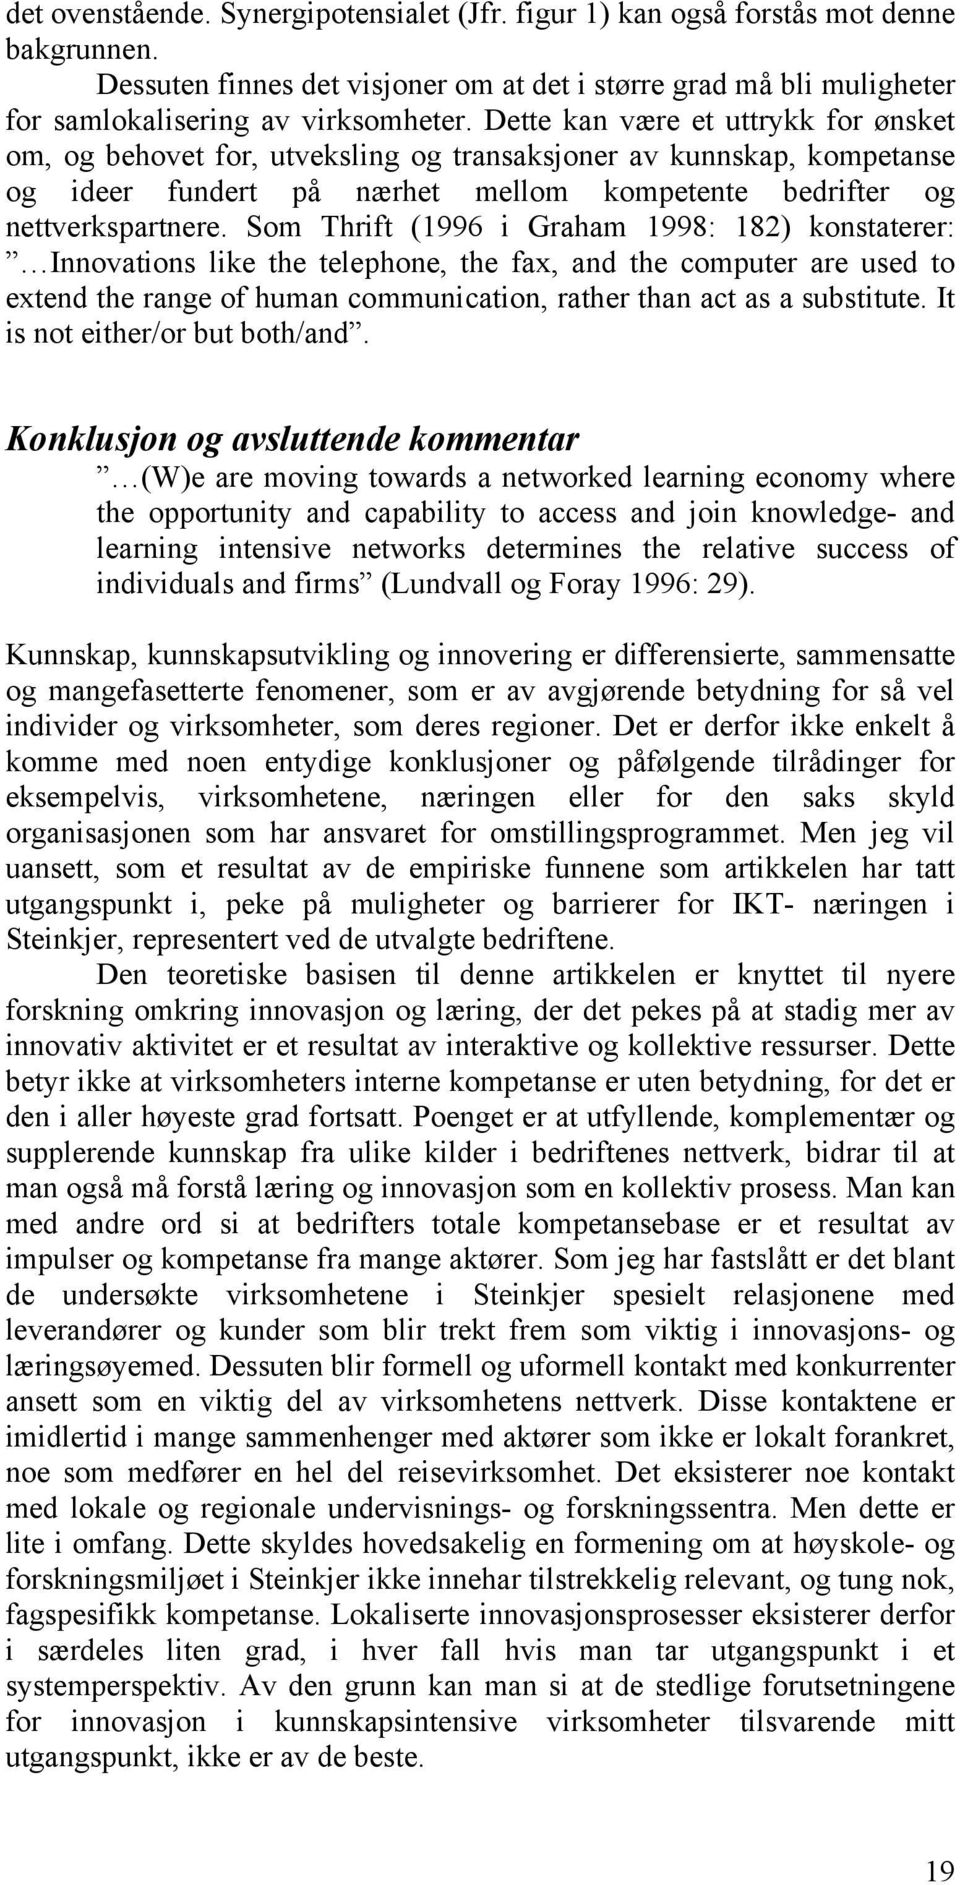 Som Thrift (1996 i Graham 1998: 182) konstaterer: Innovations like the telephone, the fax, and the computer are used to extend the range of human communication, rather than act as a substitute.